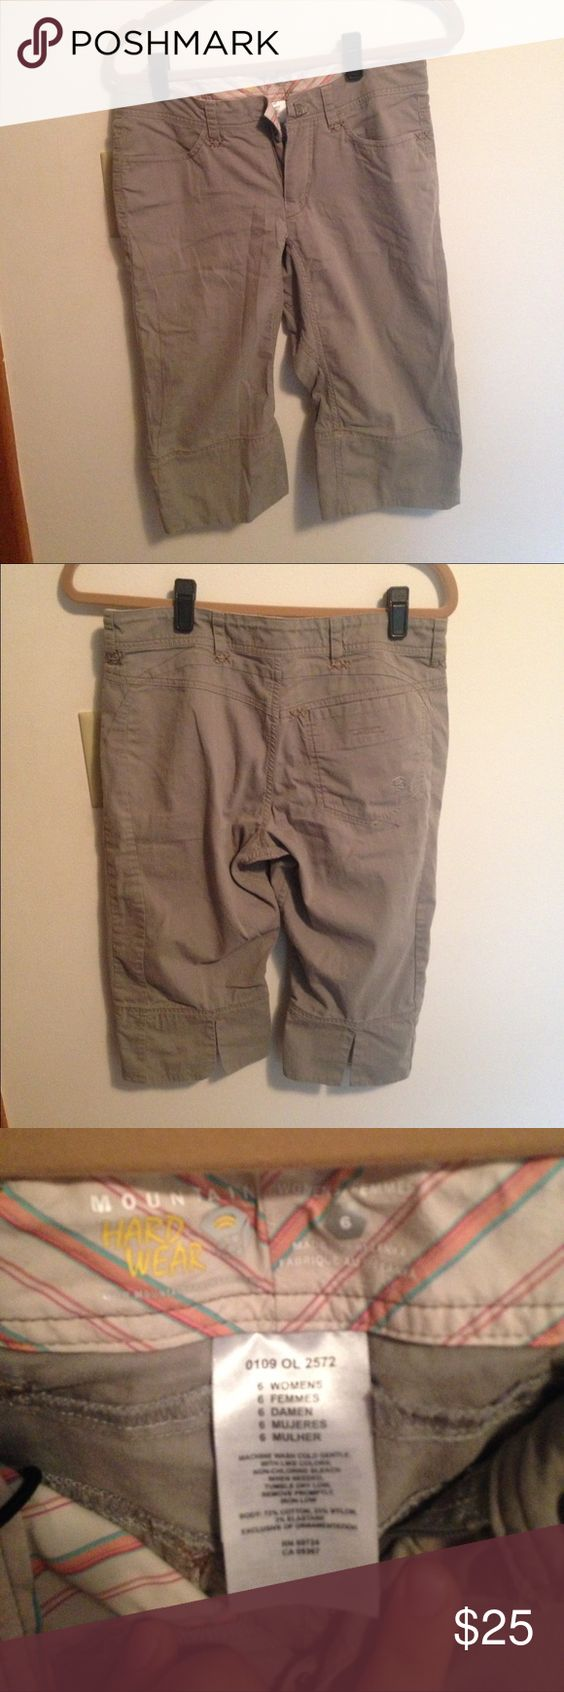 Mountain Hard Wear Hiking Shorts Great shorts for being outside and hiking in! Made of great material that is very durable and is able to be very flexible. Worn a couple times, but not often at all. Mountain Hard Wear Shorts Bermudas